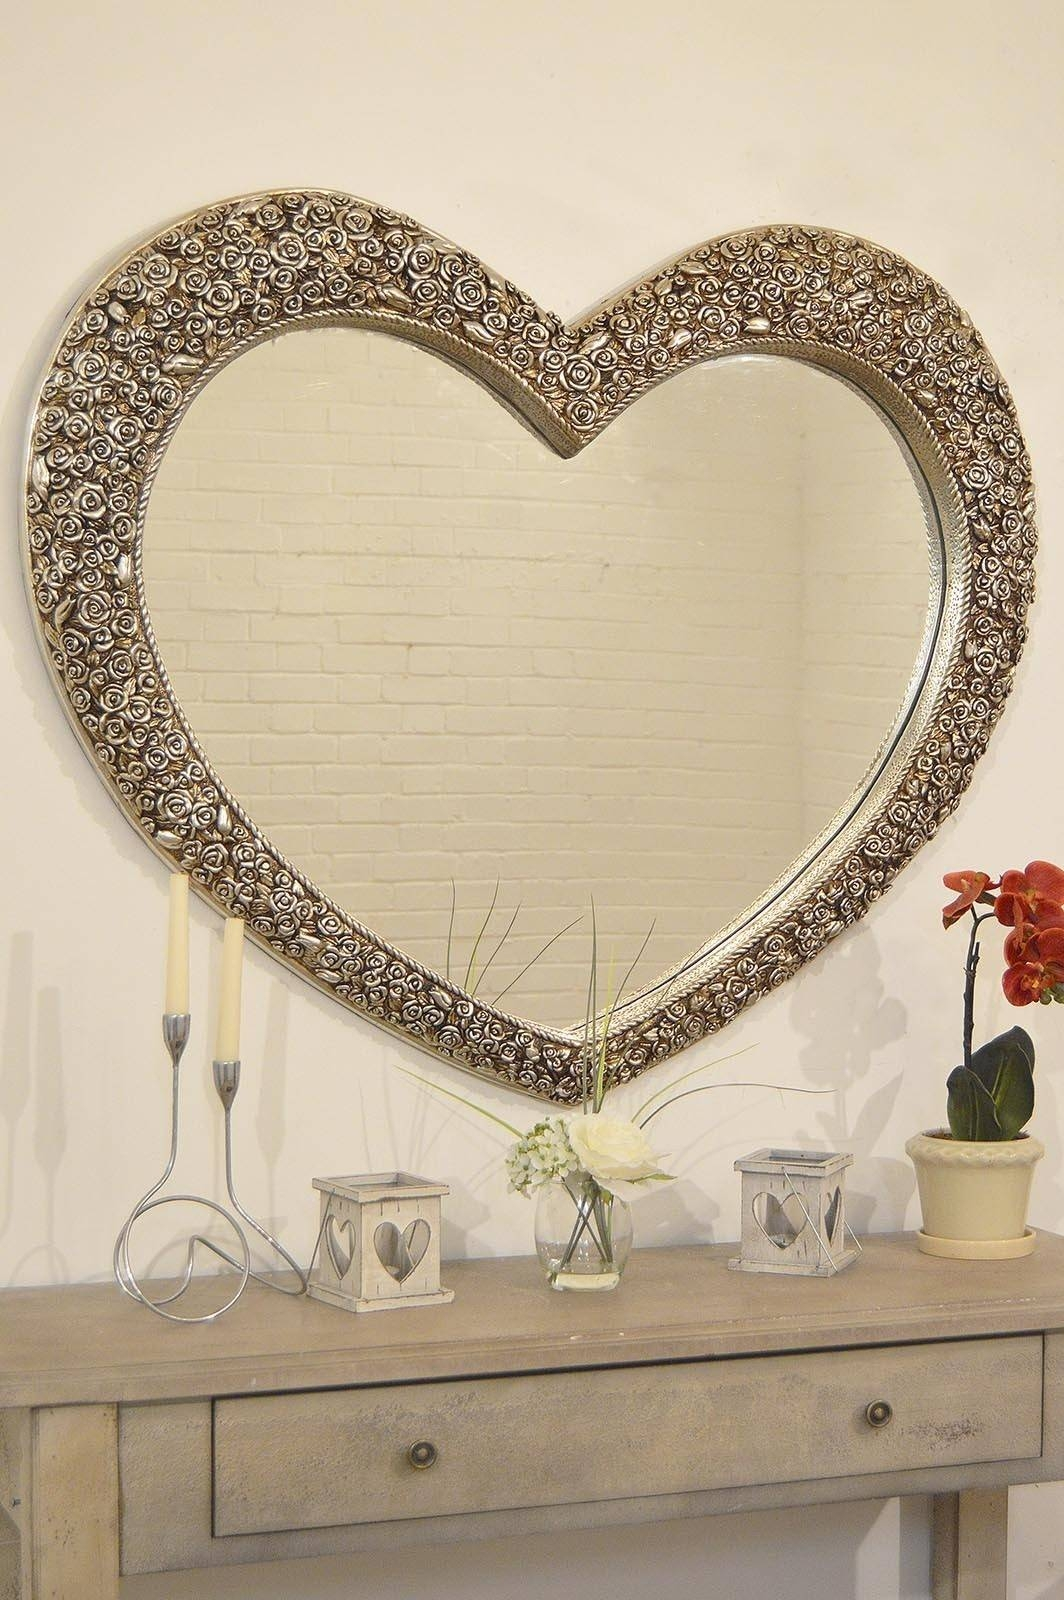 Wall Mirrors Images, Full Wall Mirrors Fabulous Wall Mirrors with Champagne Wall Mirrors (Image 25 of 25)